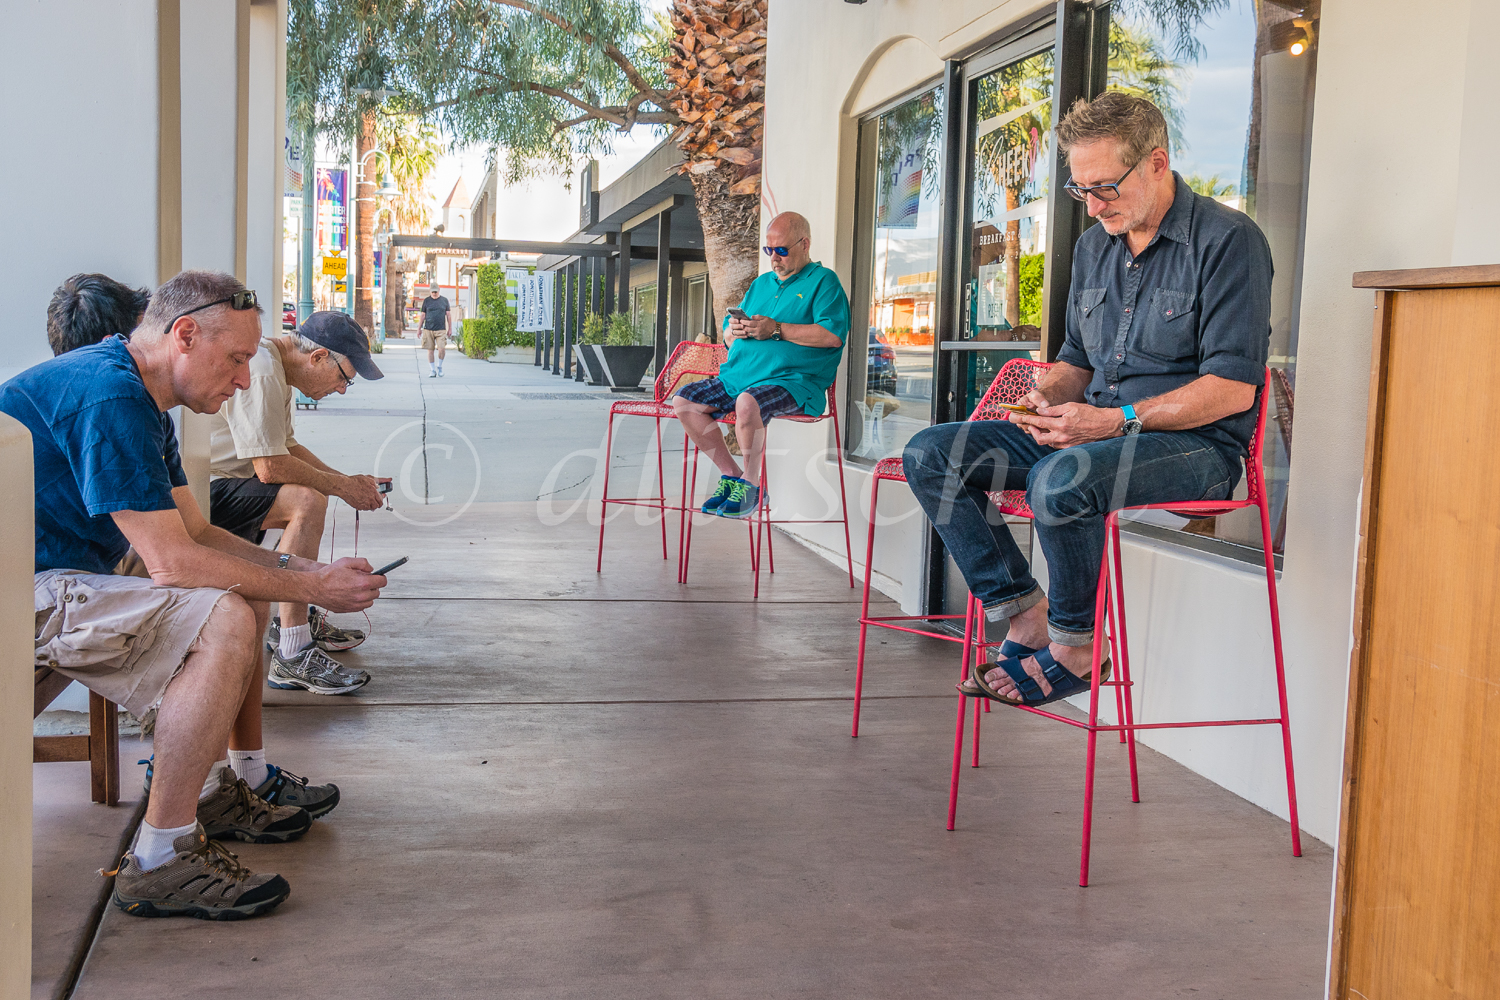 Adult males sitting, waiting for a table and focusing on their smartphones as entertainment outside a restaurant in Palm Springs, California.